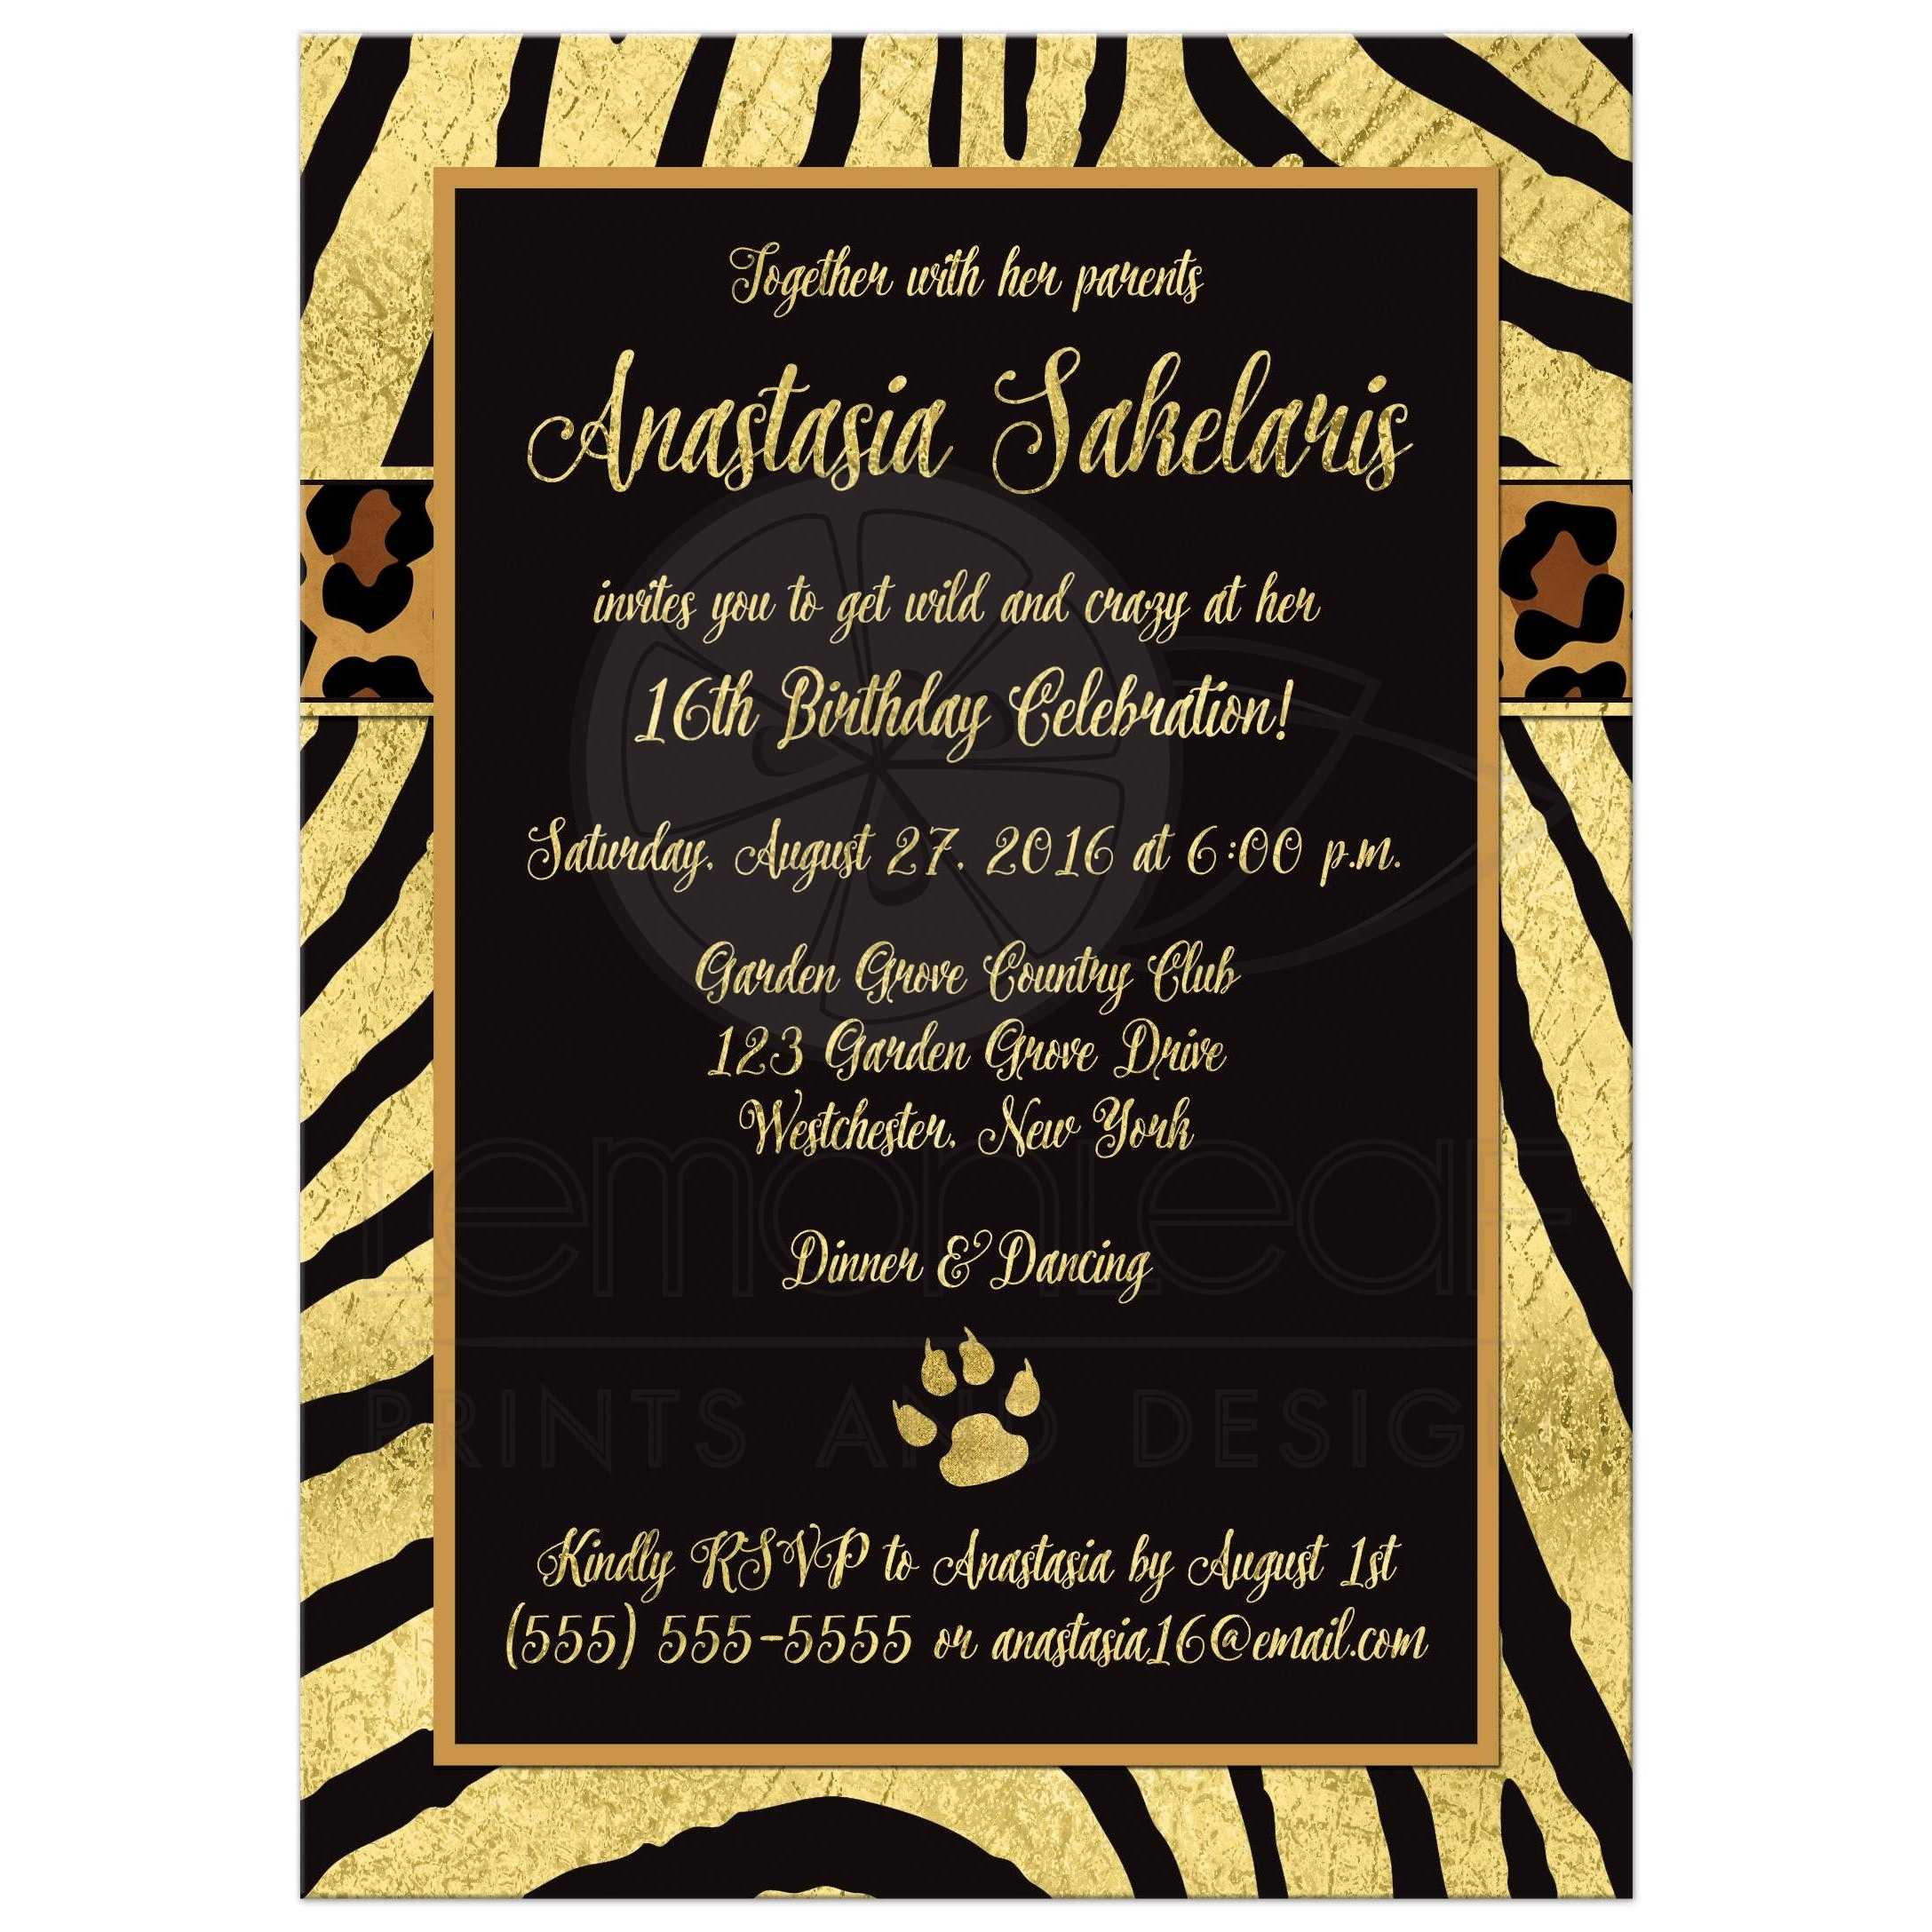 Invitations Quinceanera is nice invitation design